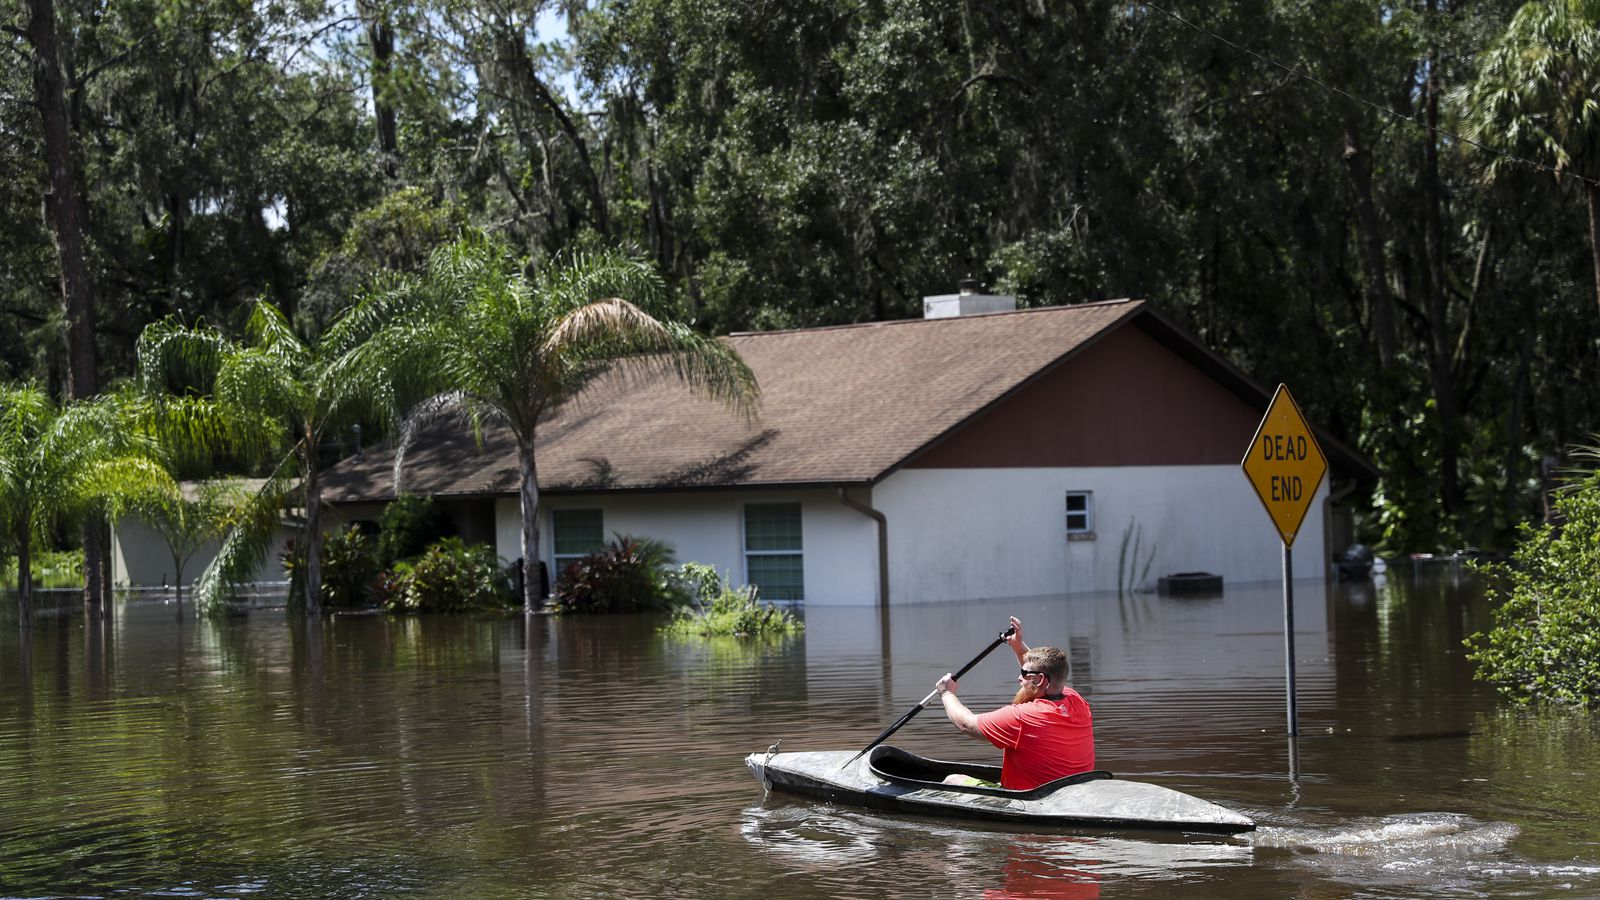 Florida has thousands more properties with high flood risk than FEMA says, according to new study